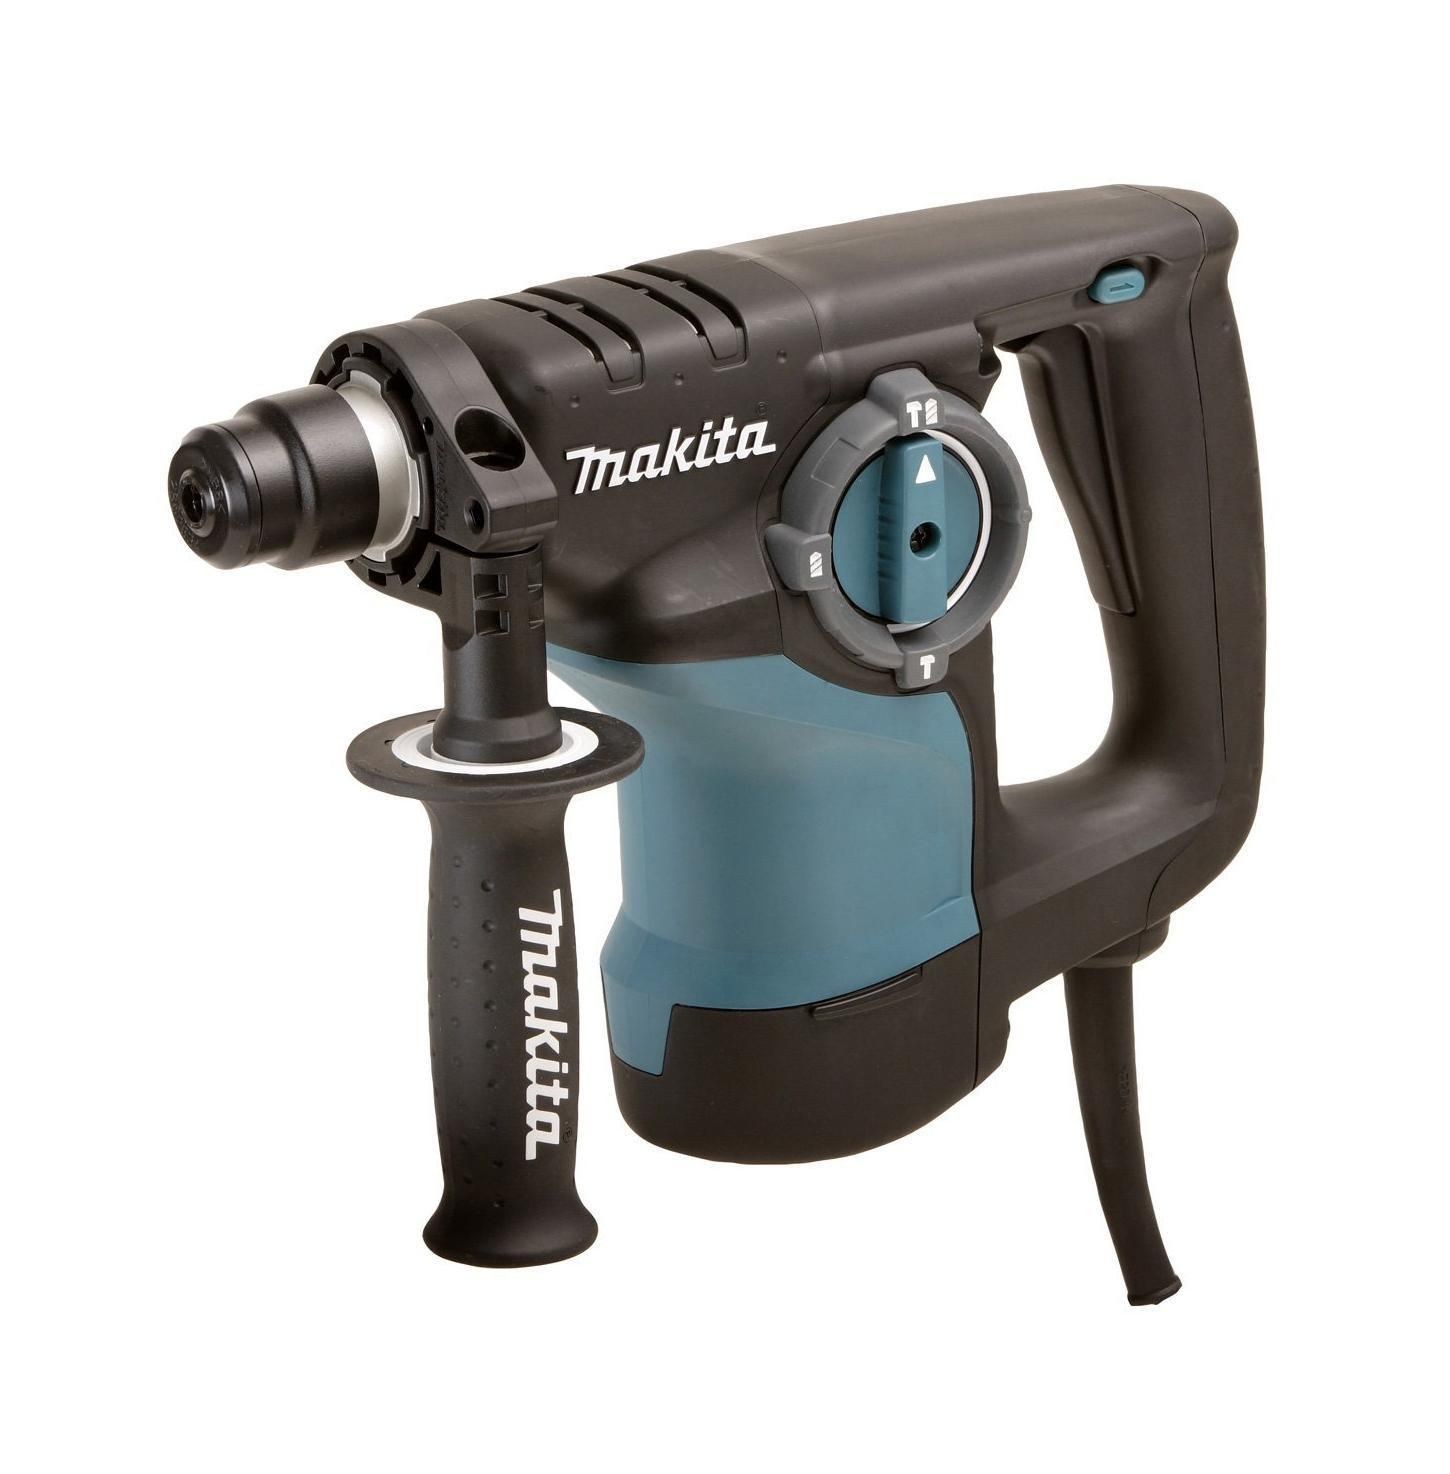 Перфоратор Makita HR2810, SDS+